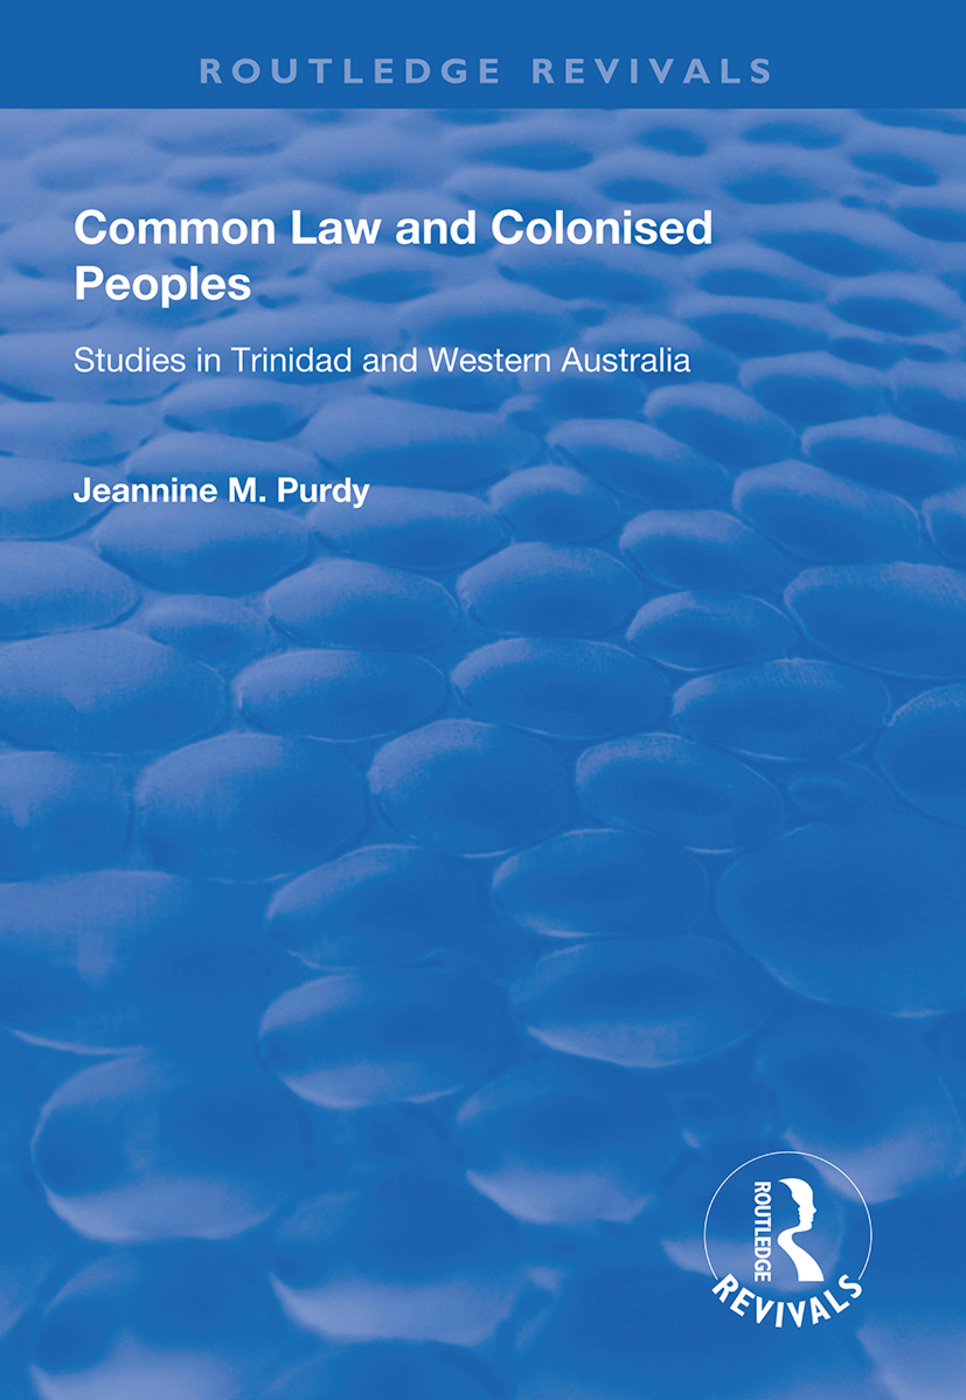 Common Law and Colonised Peoples